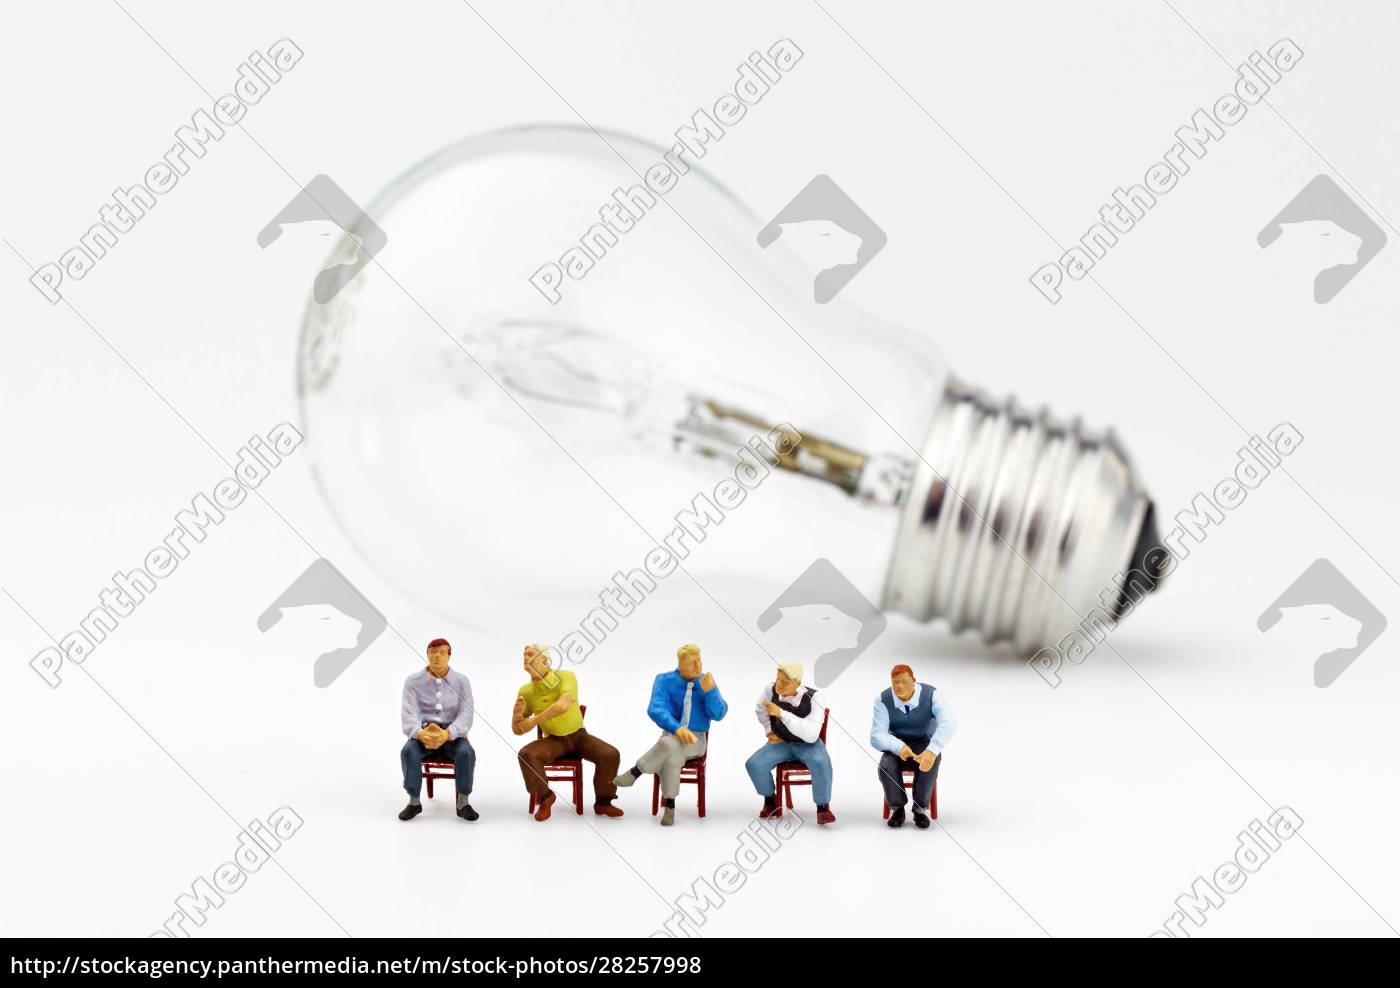 miniature, business, men, sitting, on, chairs - 28257998